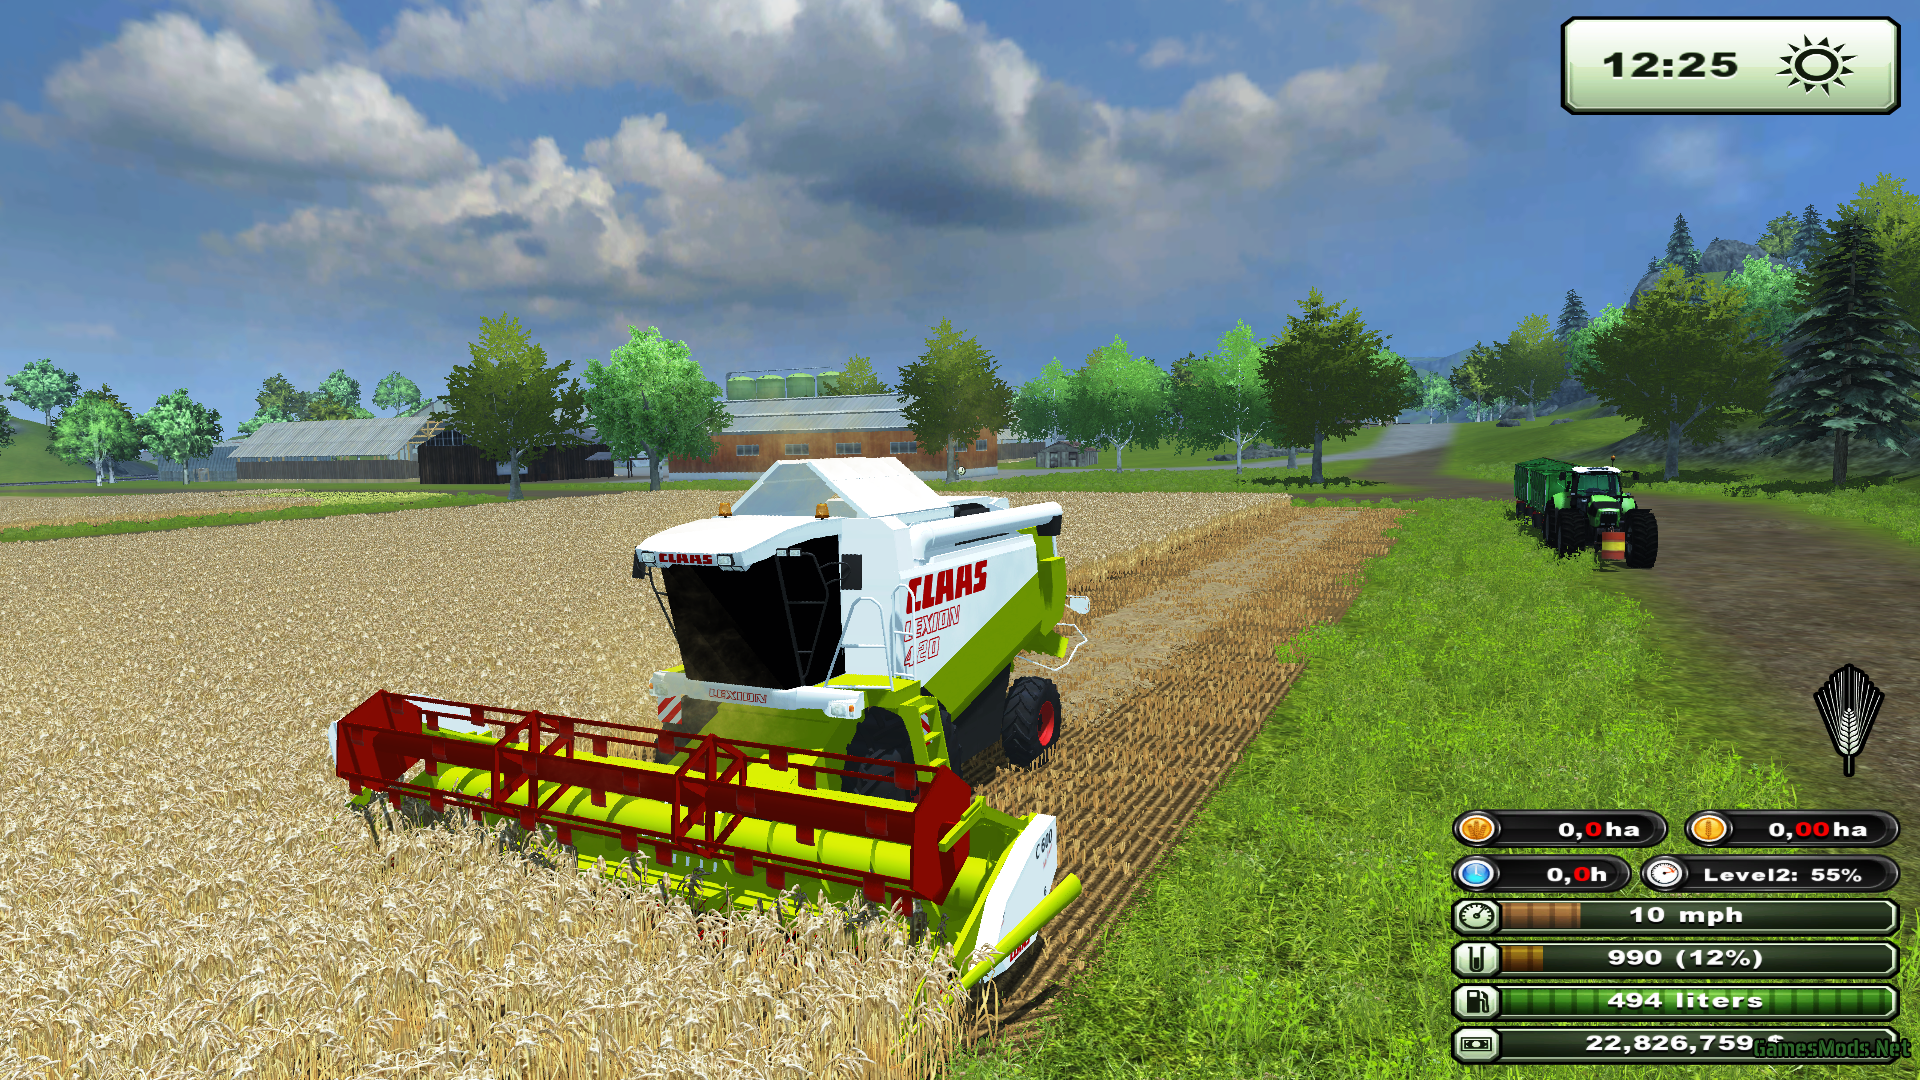 Карты Для Игры Farming Simulator 2013